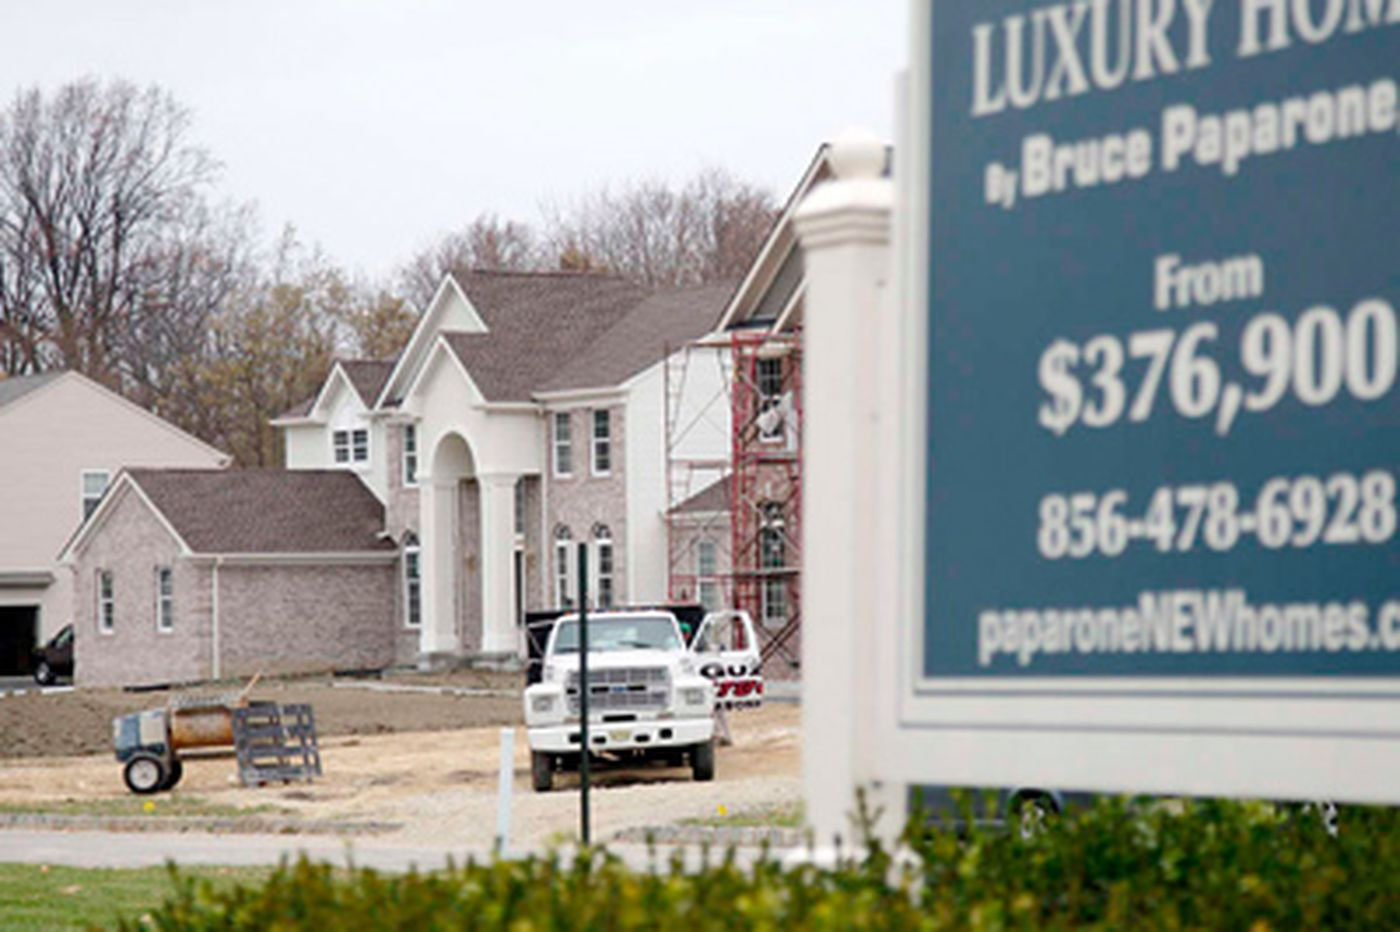 Home Economics: Amid deep contraction in the market for new homes, a South Jersey builder finds a bright spot